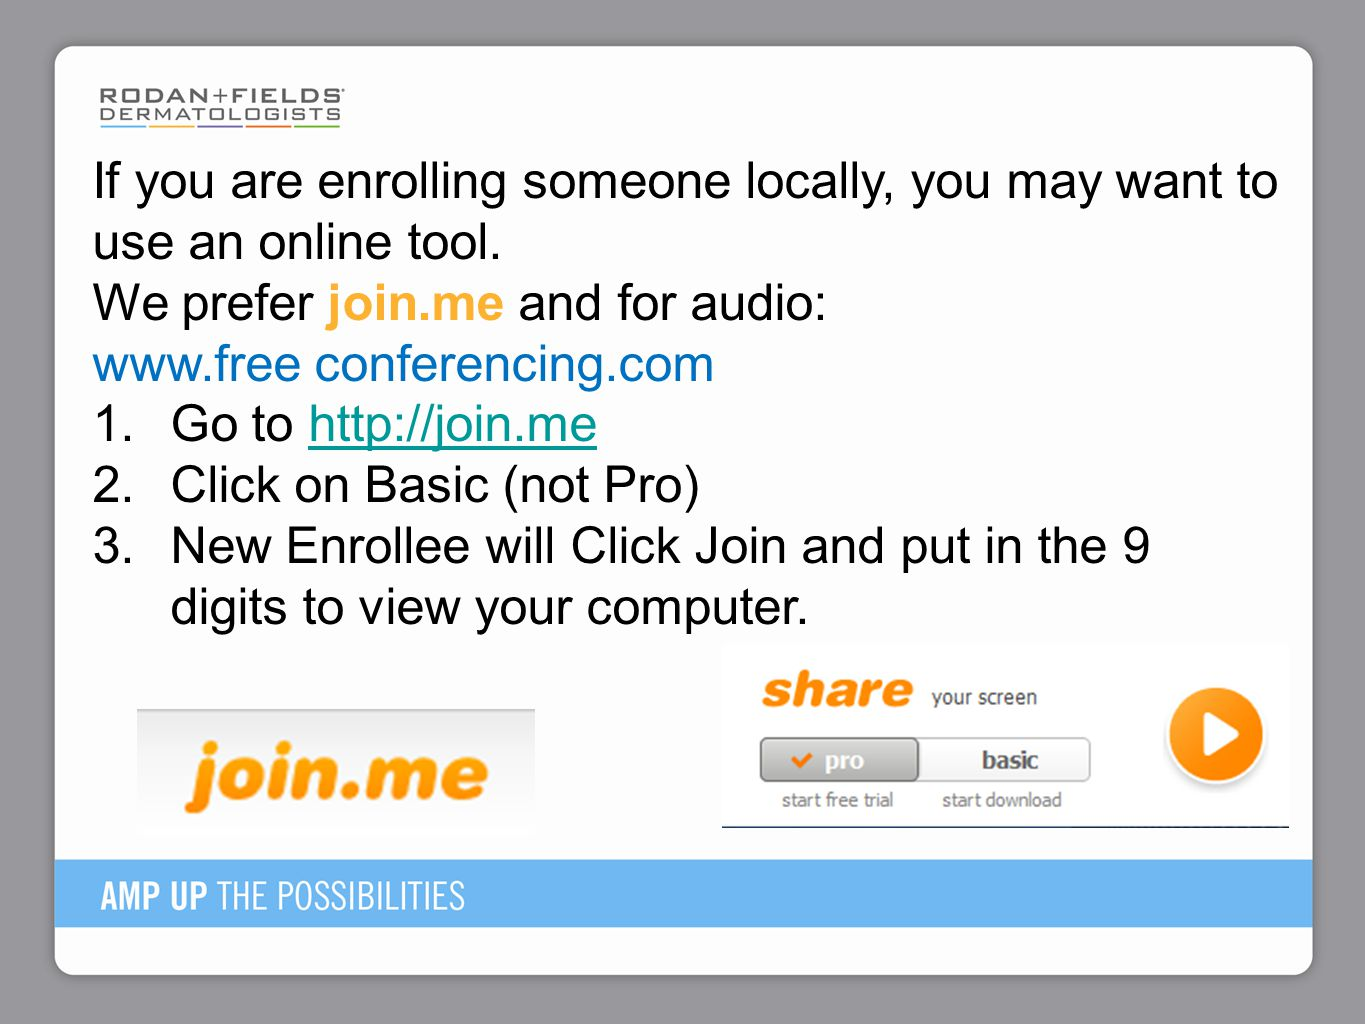 We prefer join.me and for audio: www.free conferencing.com